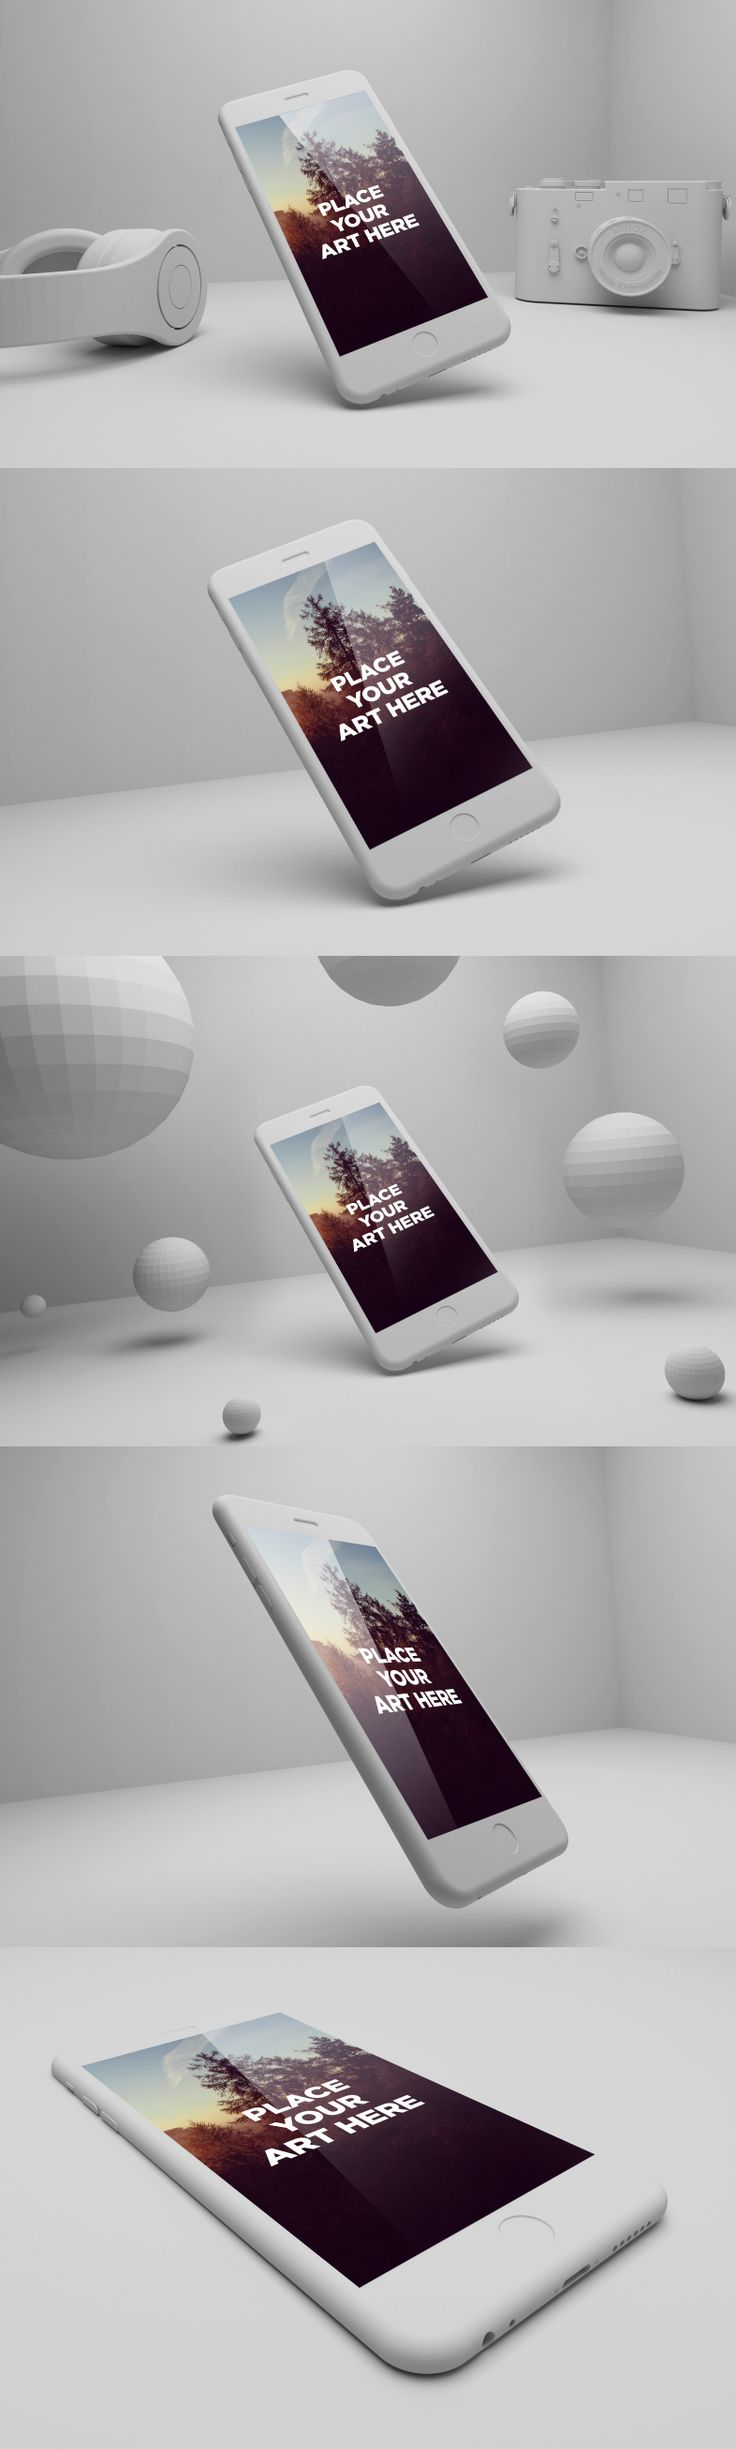 New FREE iPhone 6 PSD Playful Mockup Download free here: http://freegoodiesfordesigners.blogspot.se/2014/11/free-iphone-6-plus-playful-psd-mockups.html